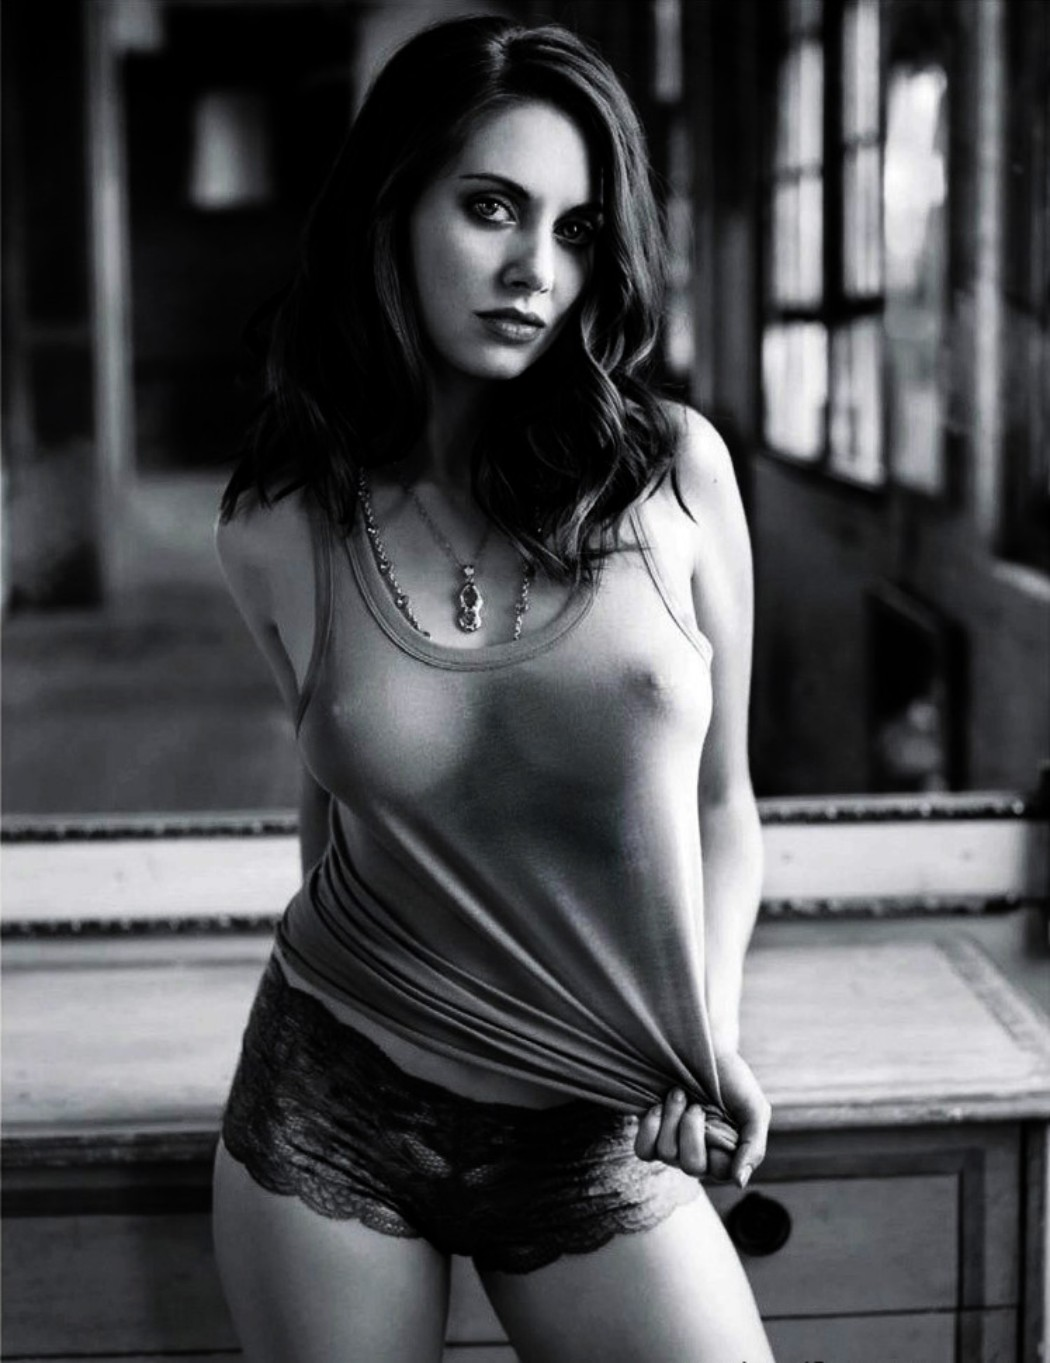 Alison-Brie-in-tank-top-with-nipples-showing-through.jpg